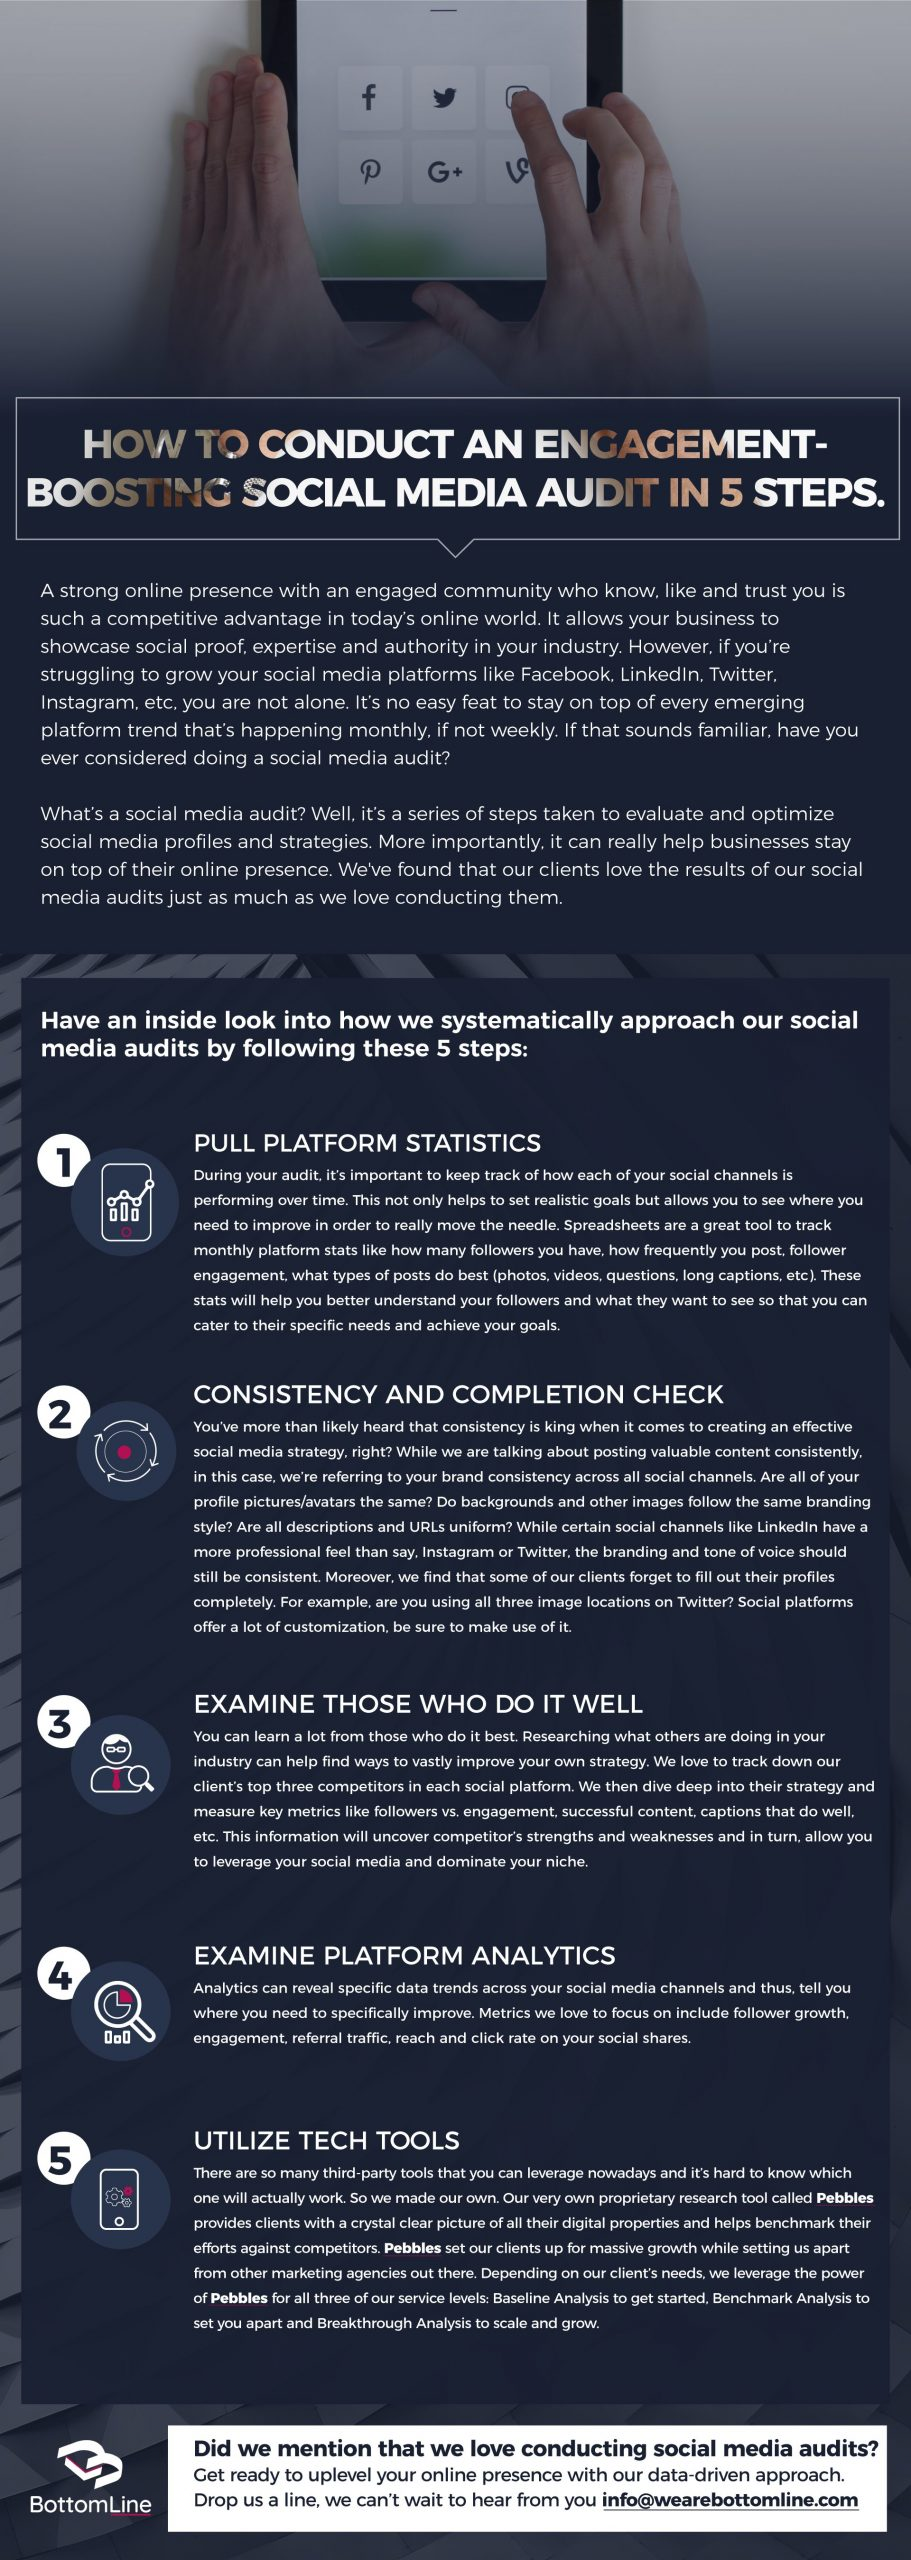 How to Conduct An Engagement-Boosting Social Media Audit in 5 Steps Infographic by BottomLine